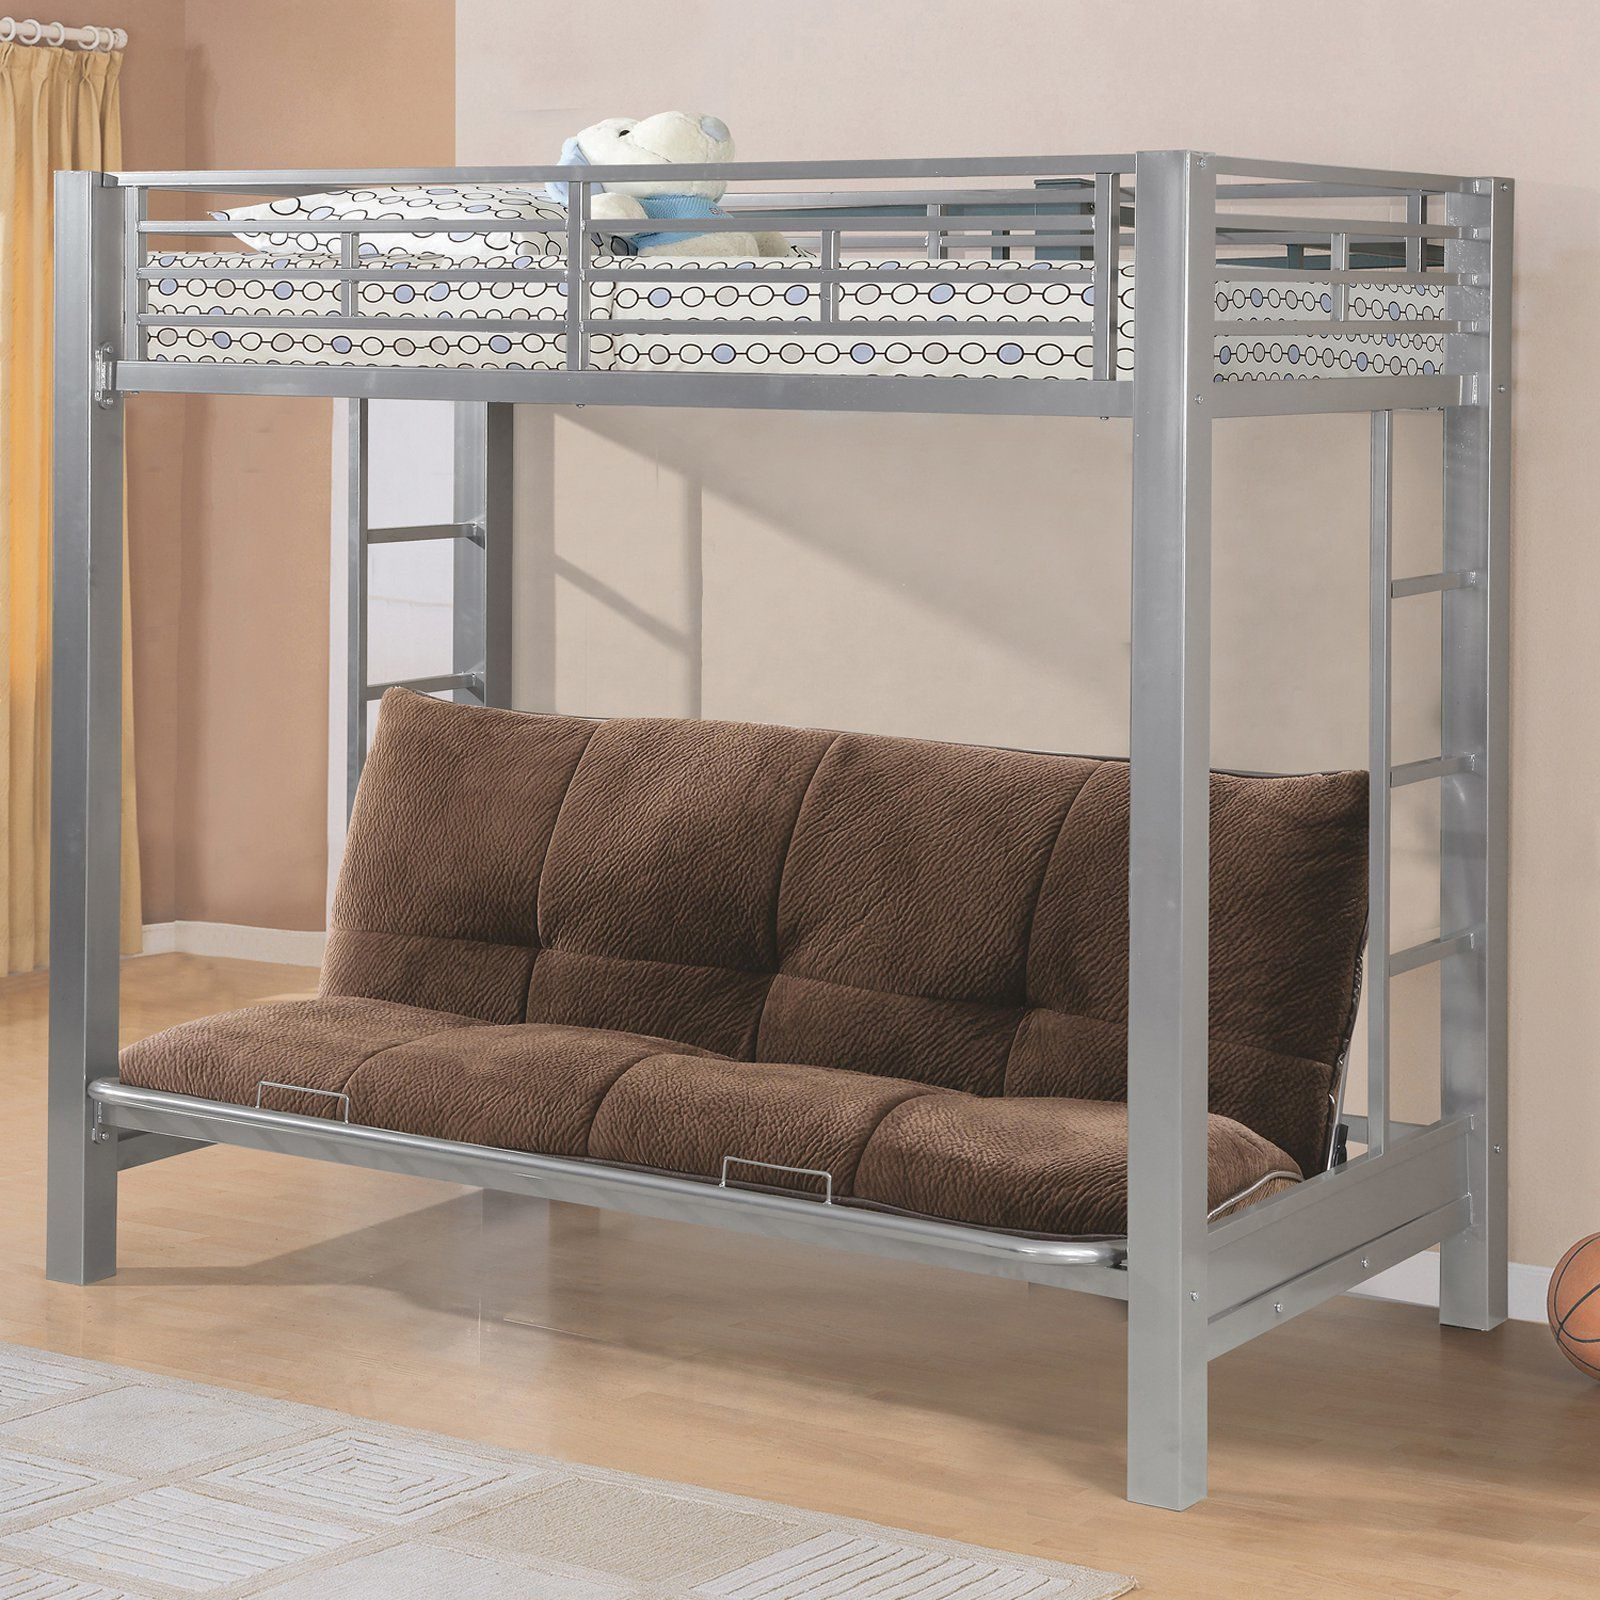 Home Source Industries Twin Over Futon Bunk Bed from